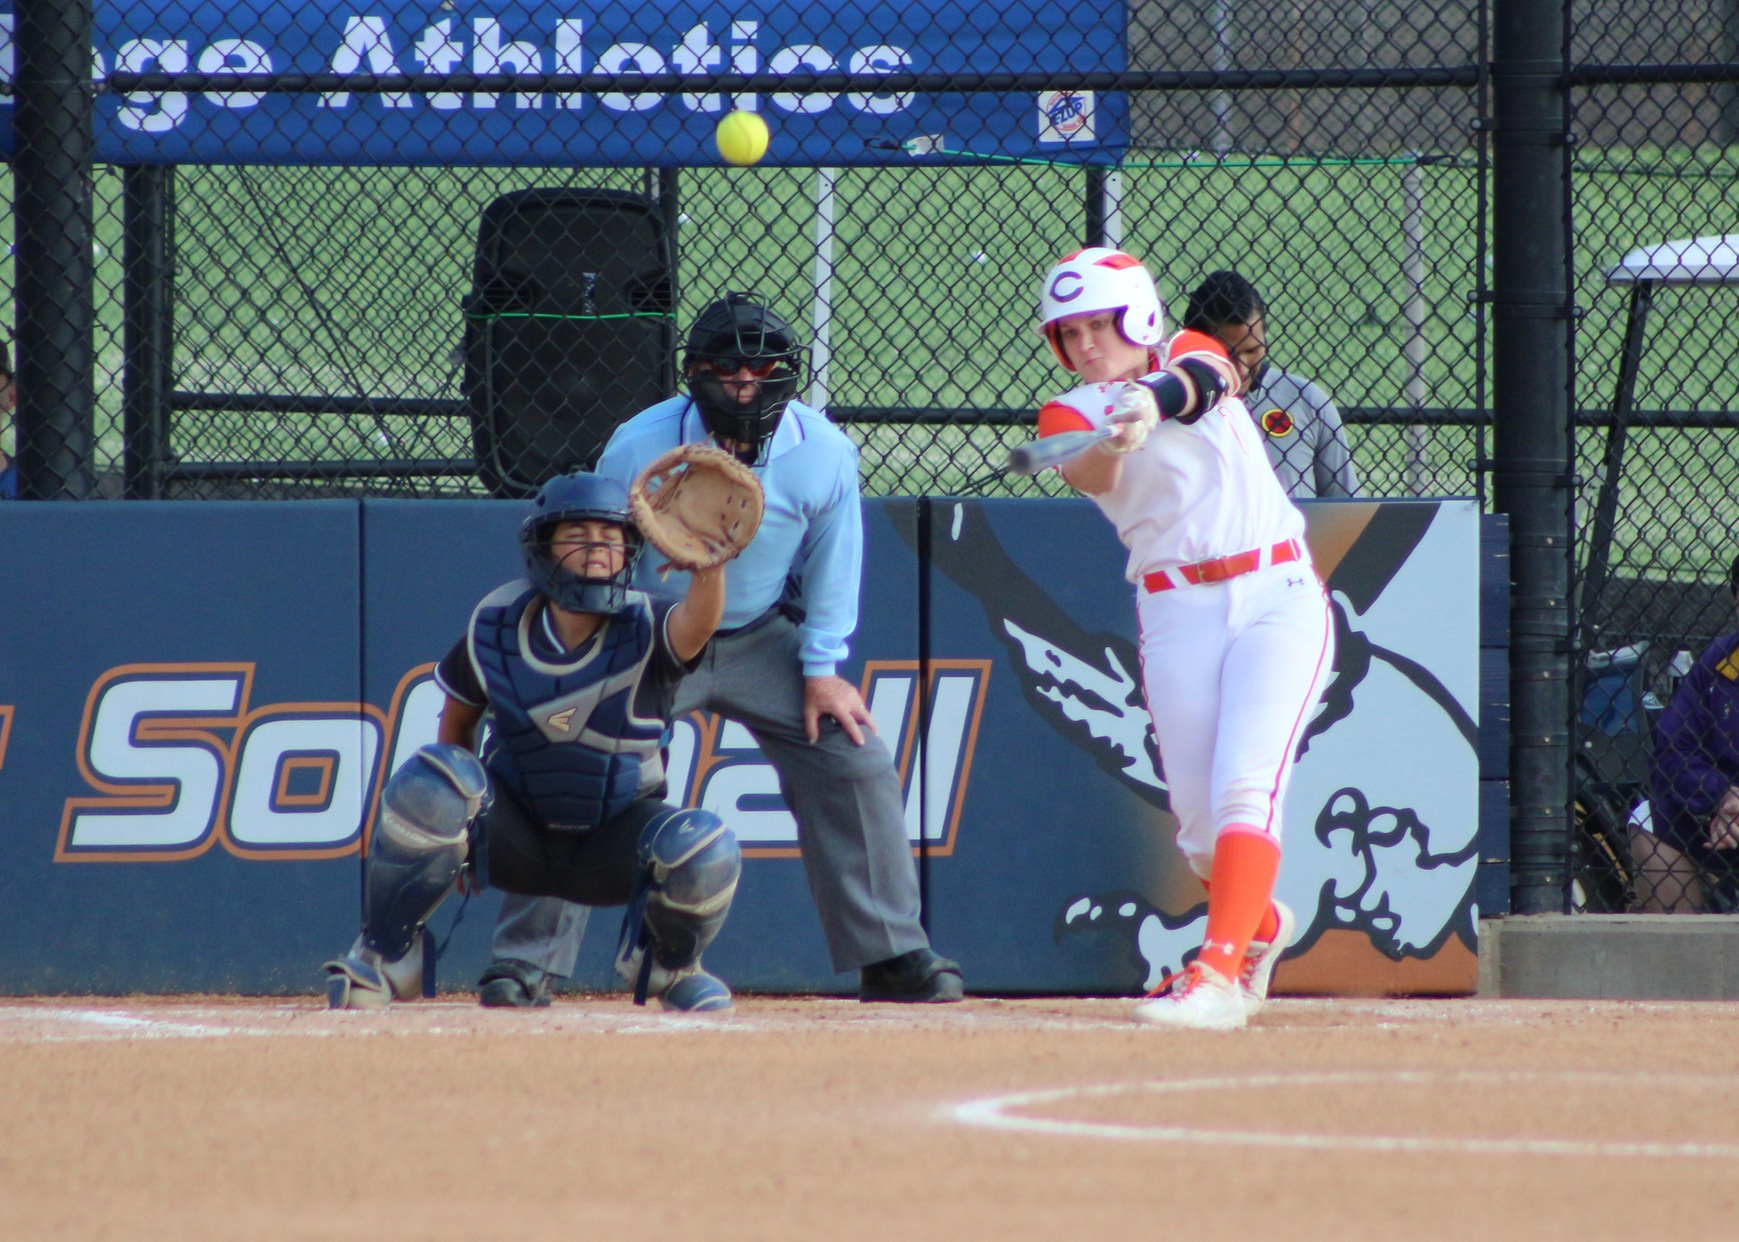 Megan Jones gets ahold of her pitch and drives a ball to deep right center. Image: Treyvon Watts-Hale